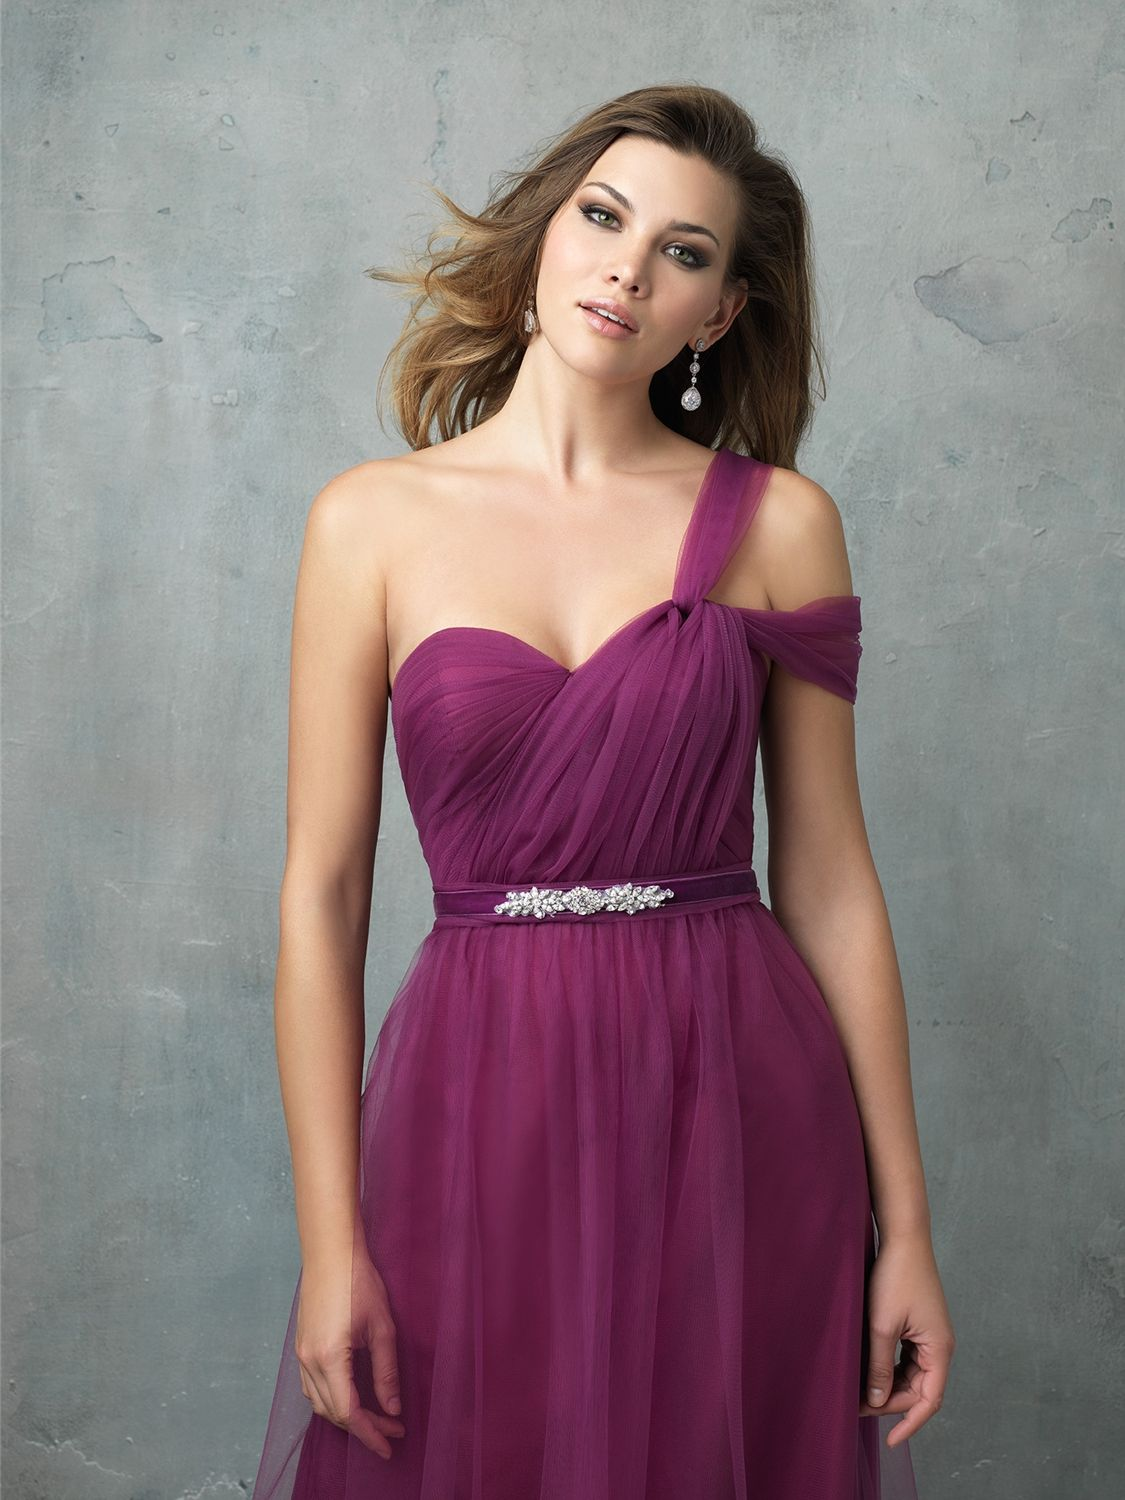 Allure bridesmaids bridesmaid dress style 1431 house of brides allure bridesmaids bridesmaid dress style 1431 house of brides junglespirit Image collections